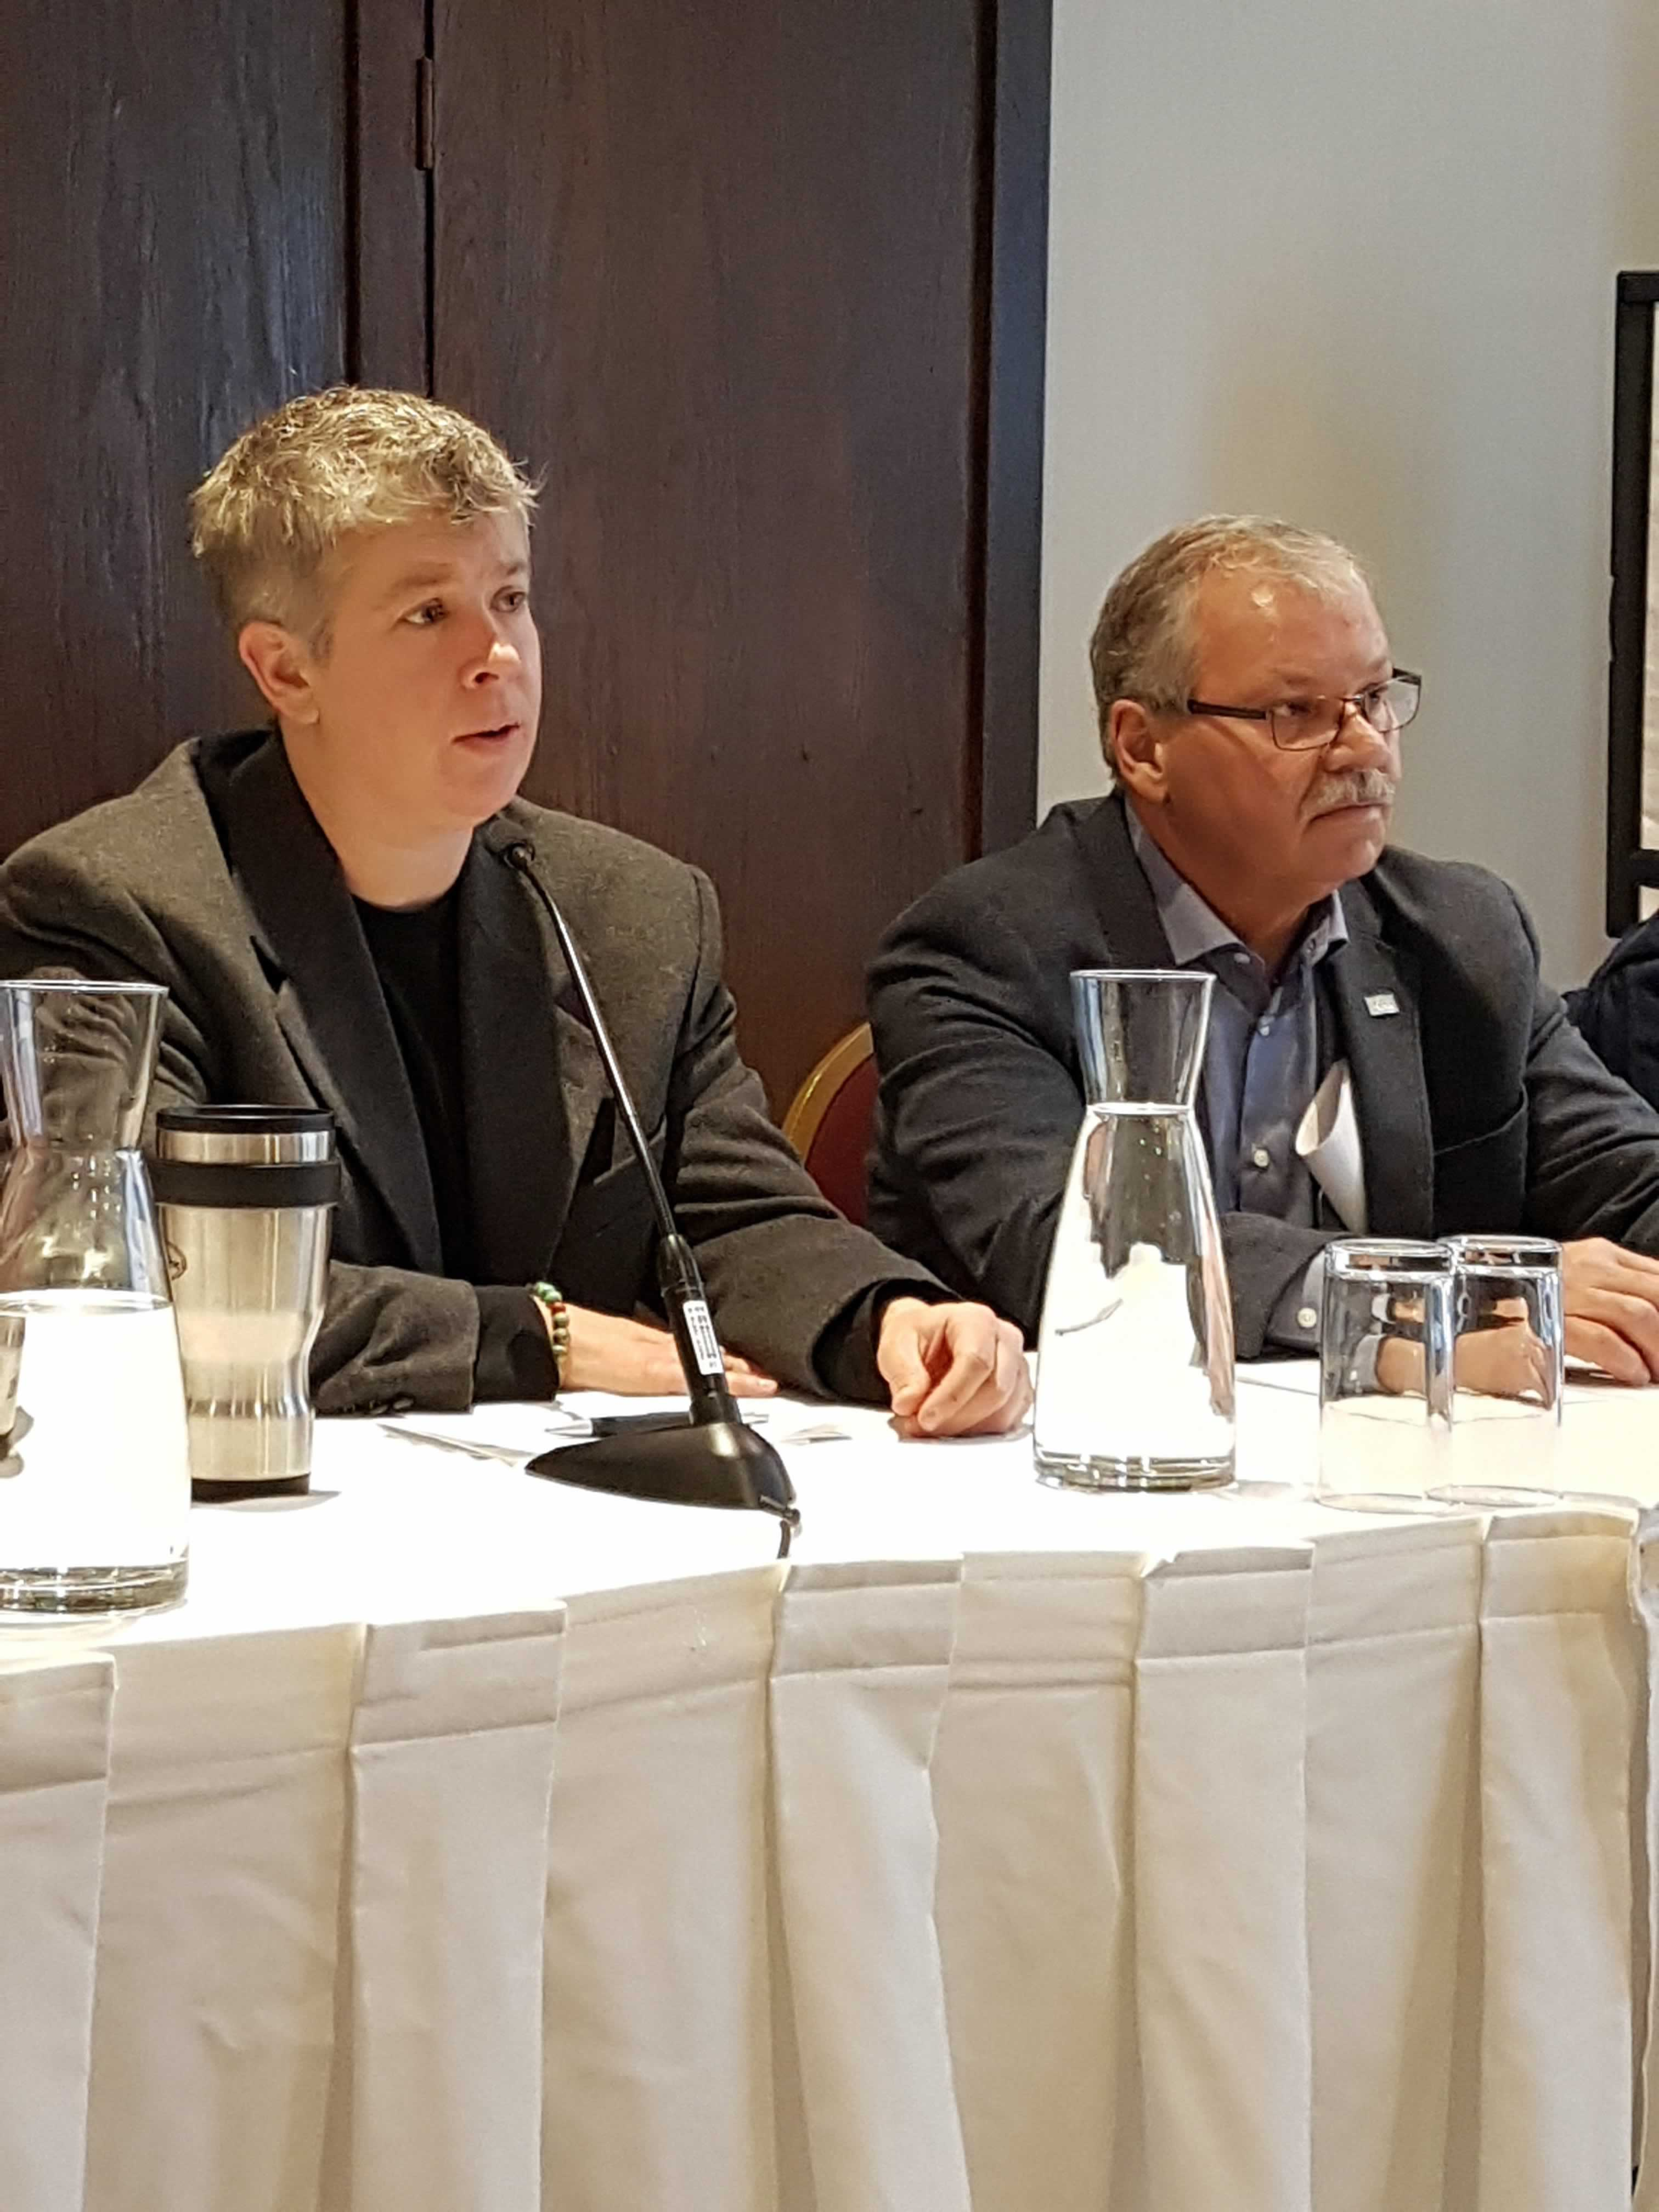 OPSEU college faculty bargaining team member JP Hornick and OPSEU President Warren (Smokey) Thomas speak at a news conference.